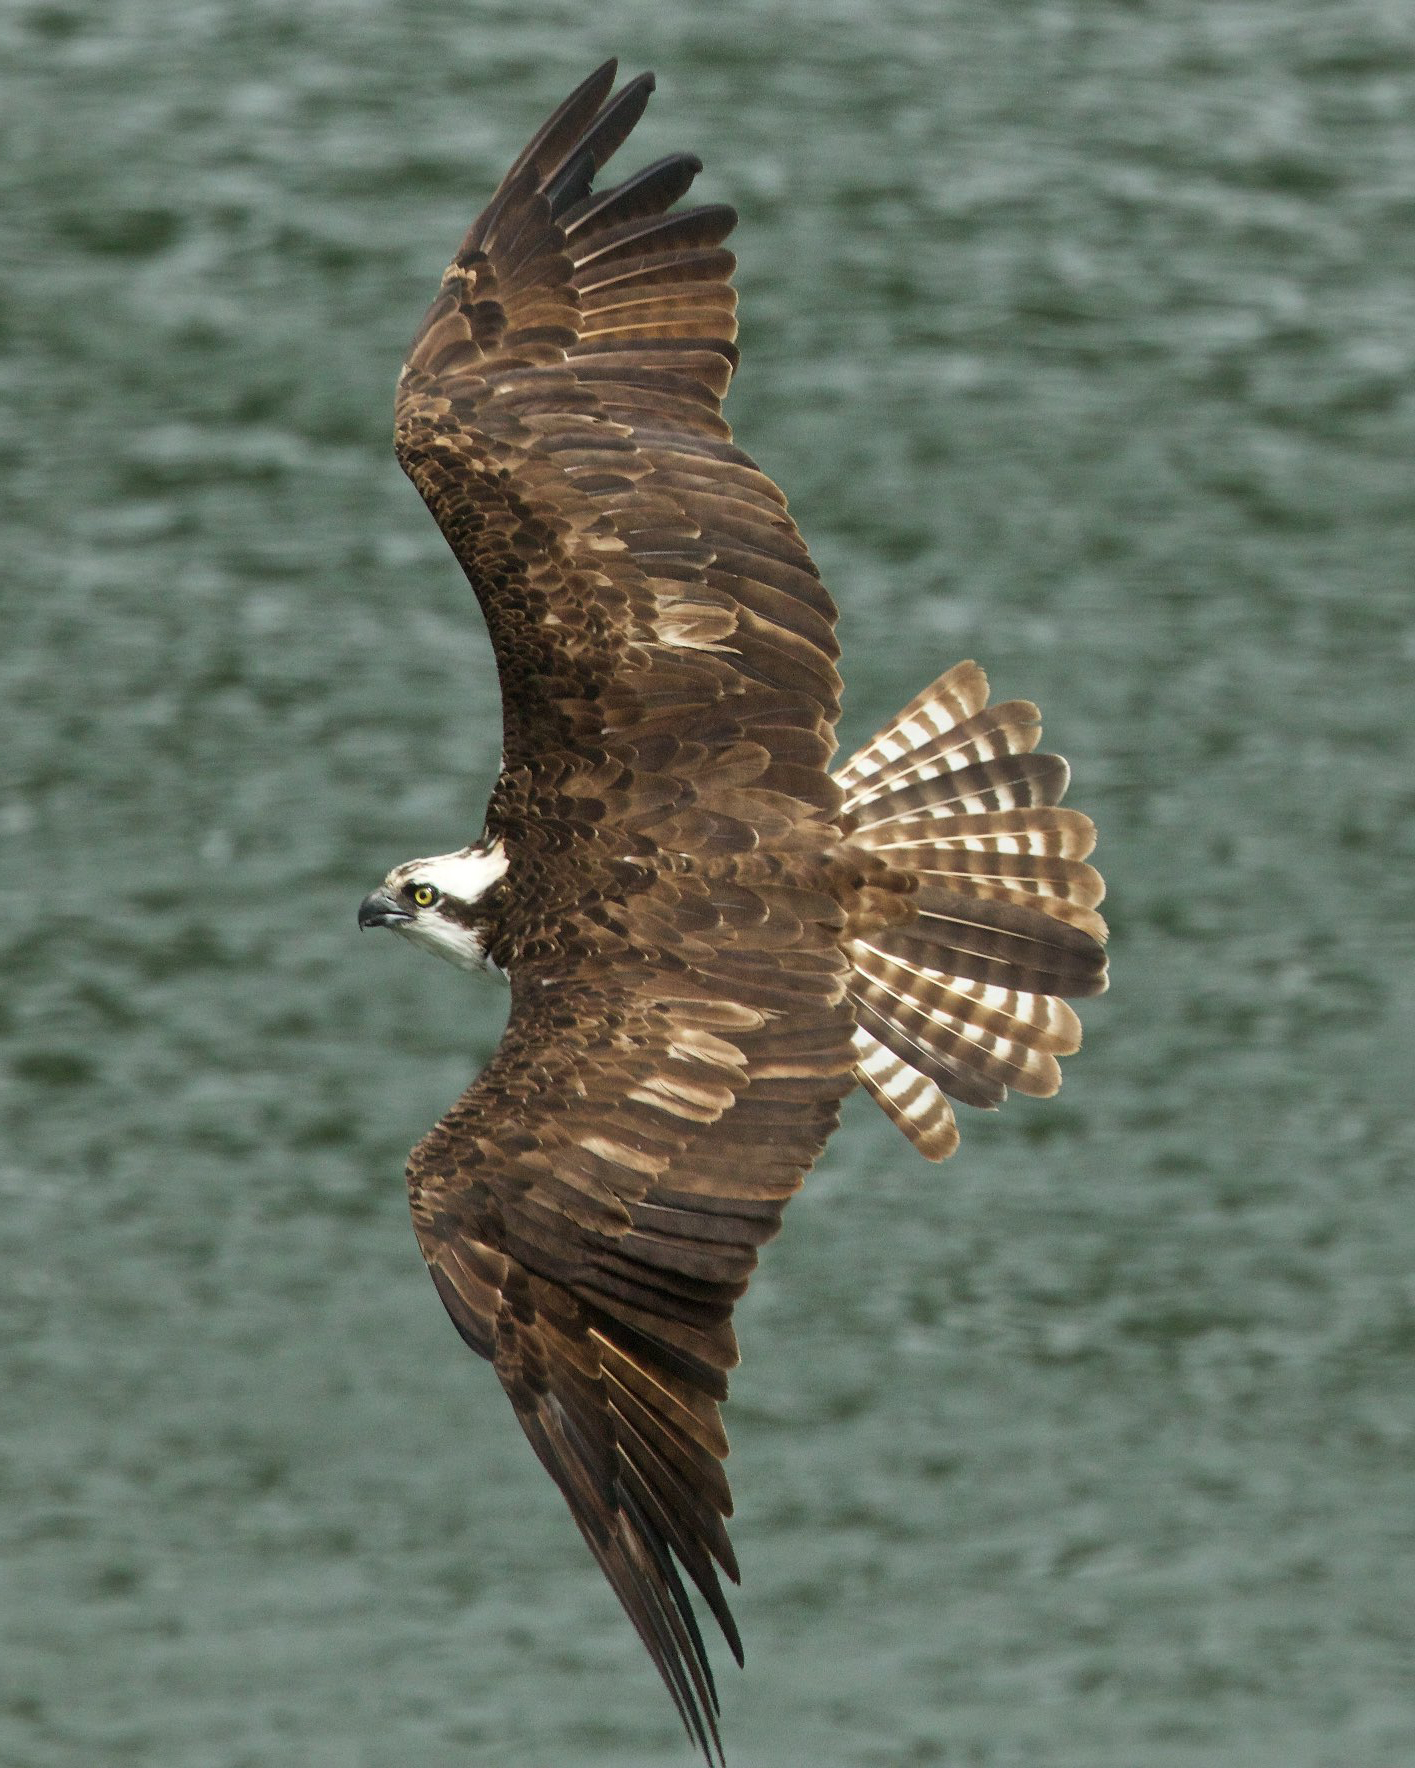 osprey eating fish 0